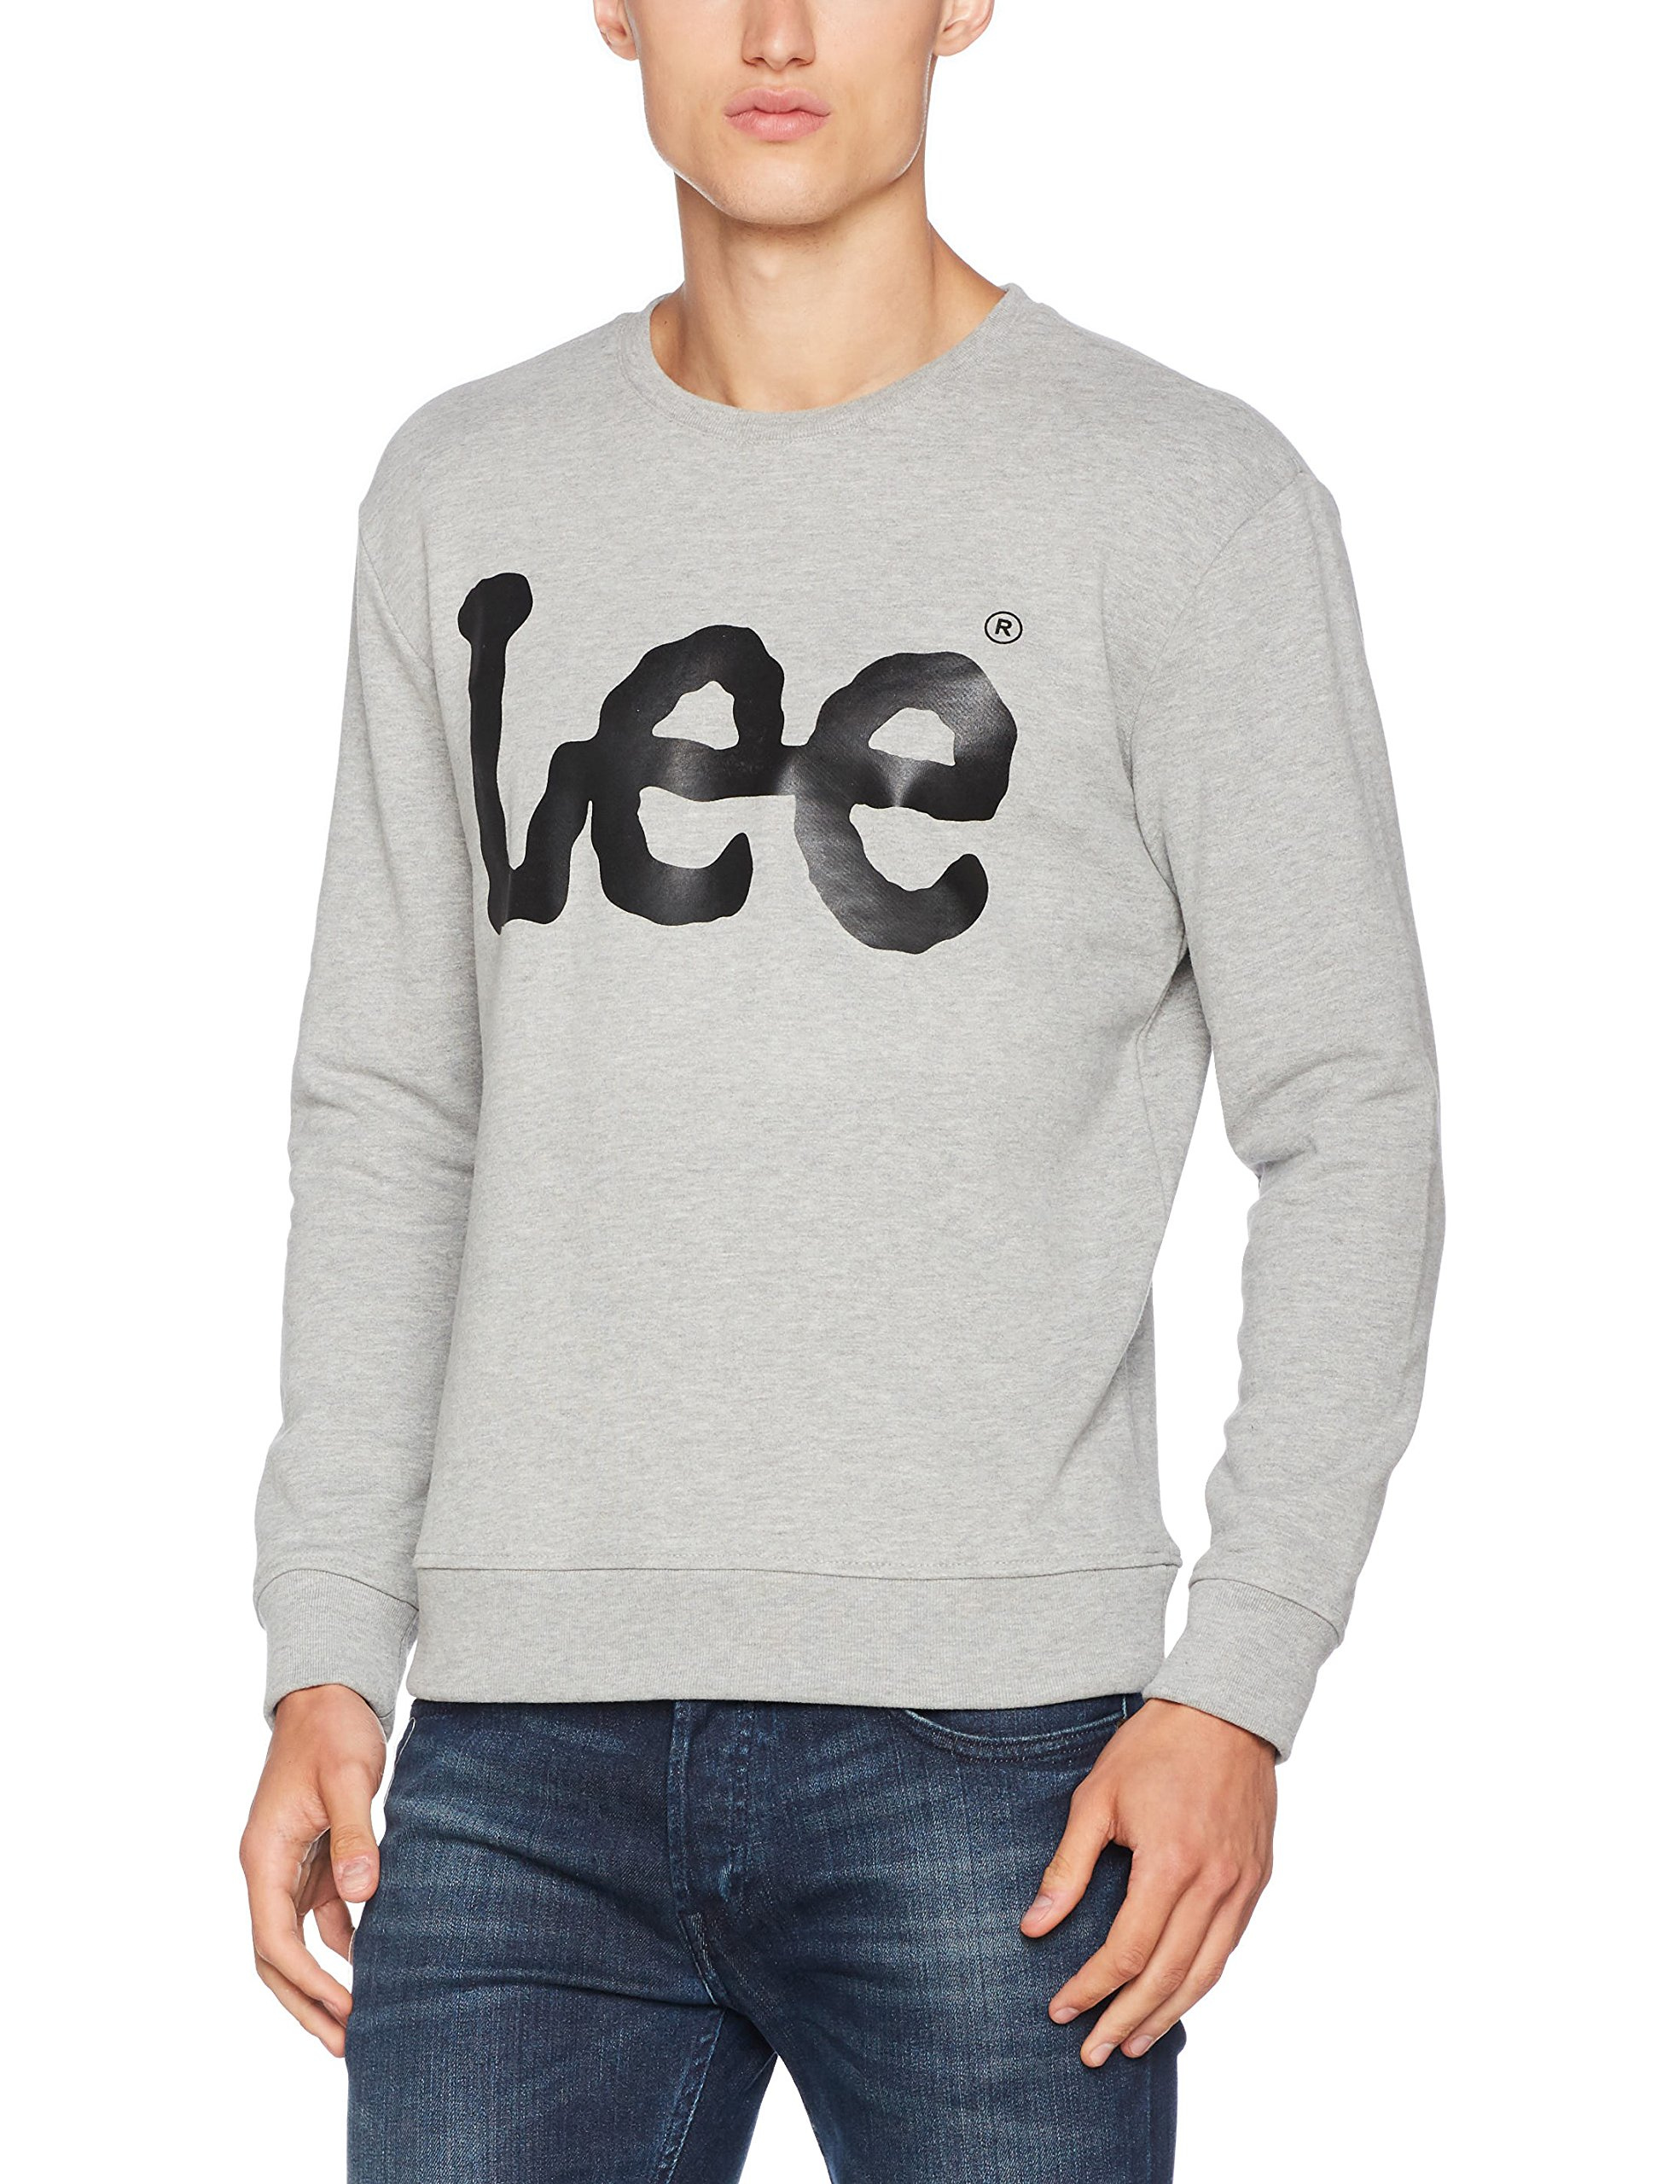 Lee Logo Sweat Mele shirtGrisgrey Homme Ub37Large Sweatshirt dorxWCeB